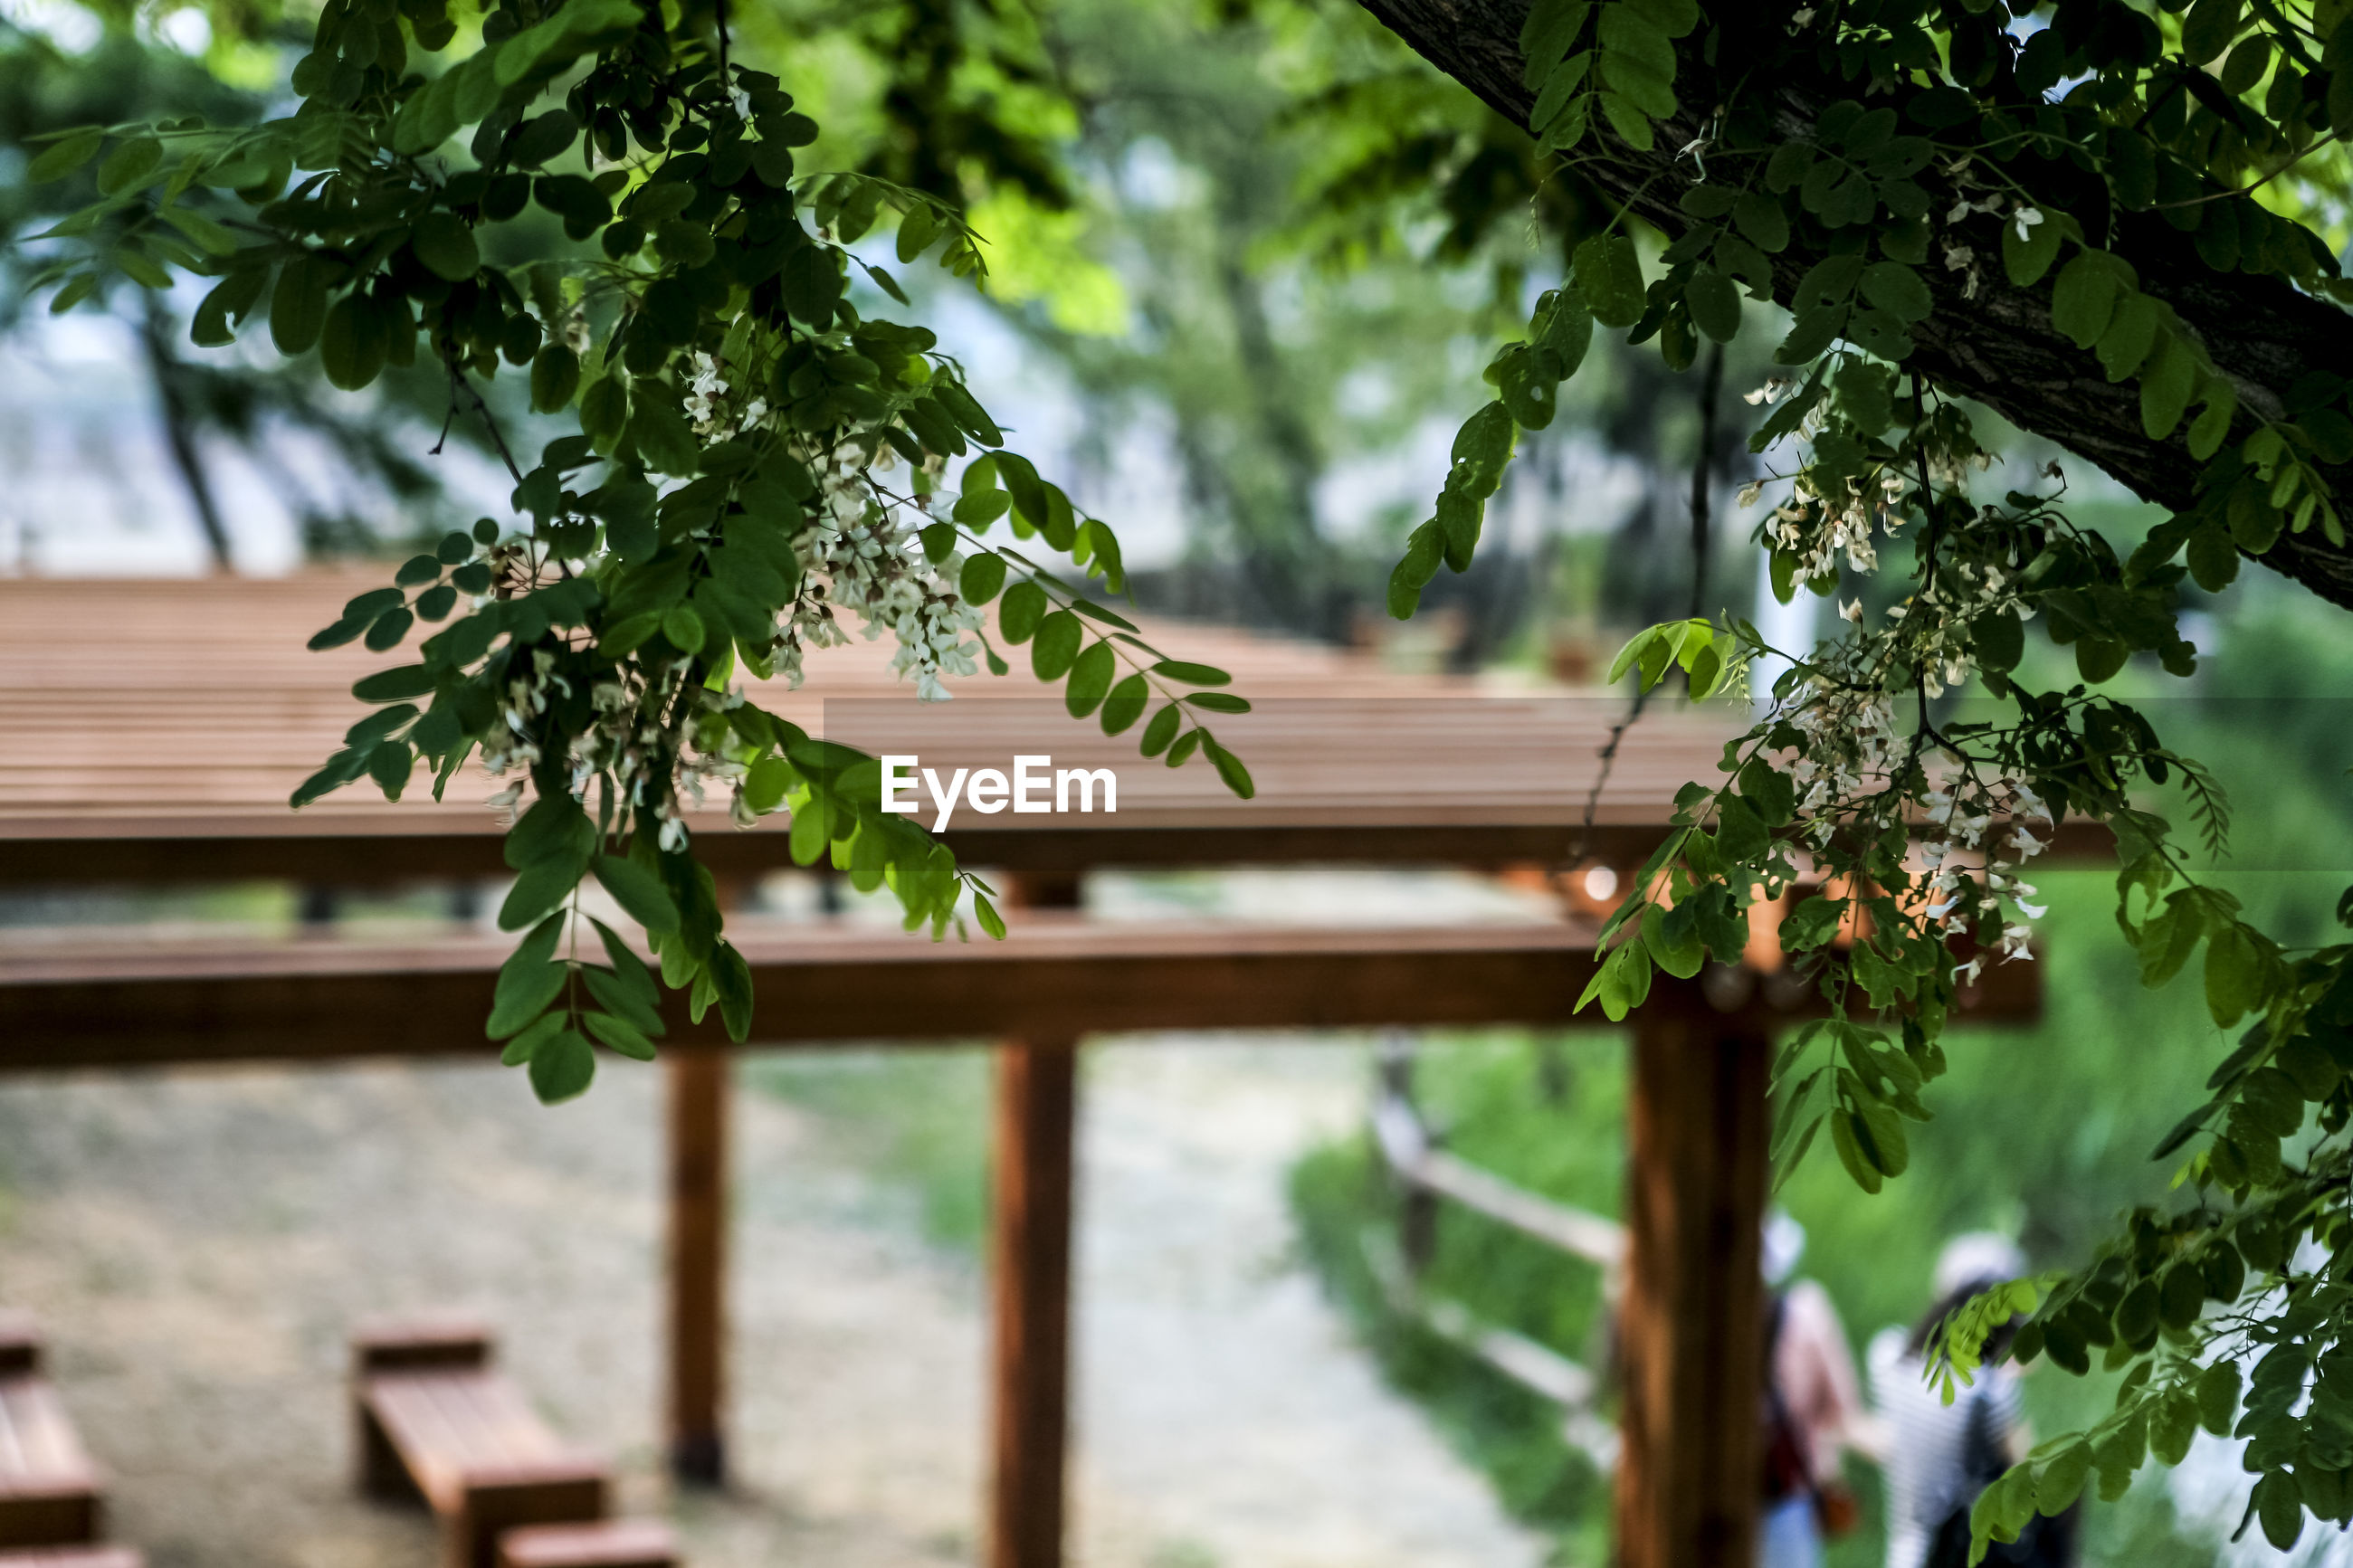 Close-up of tree branch by bench at park